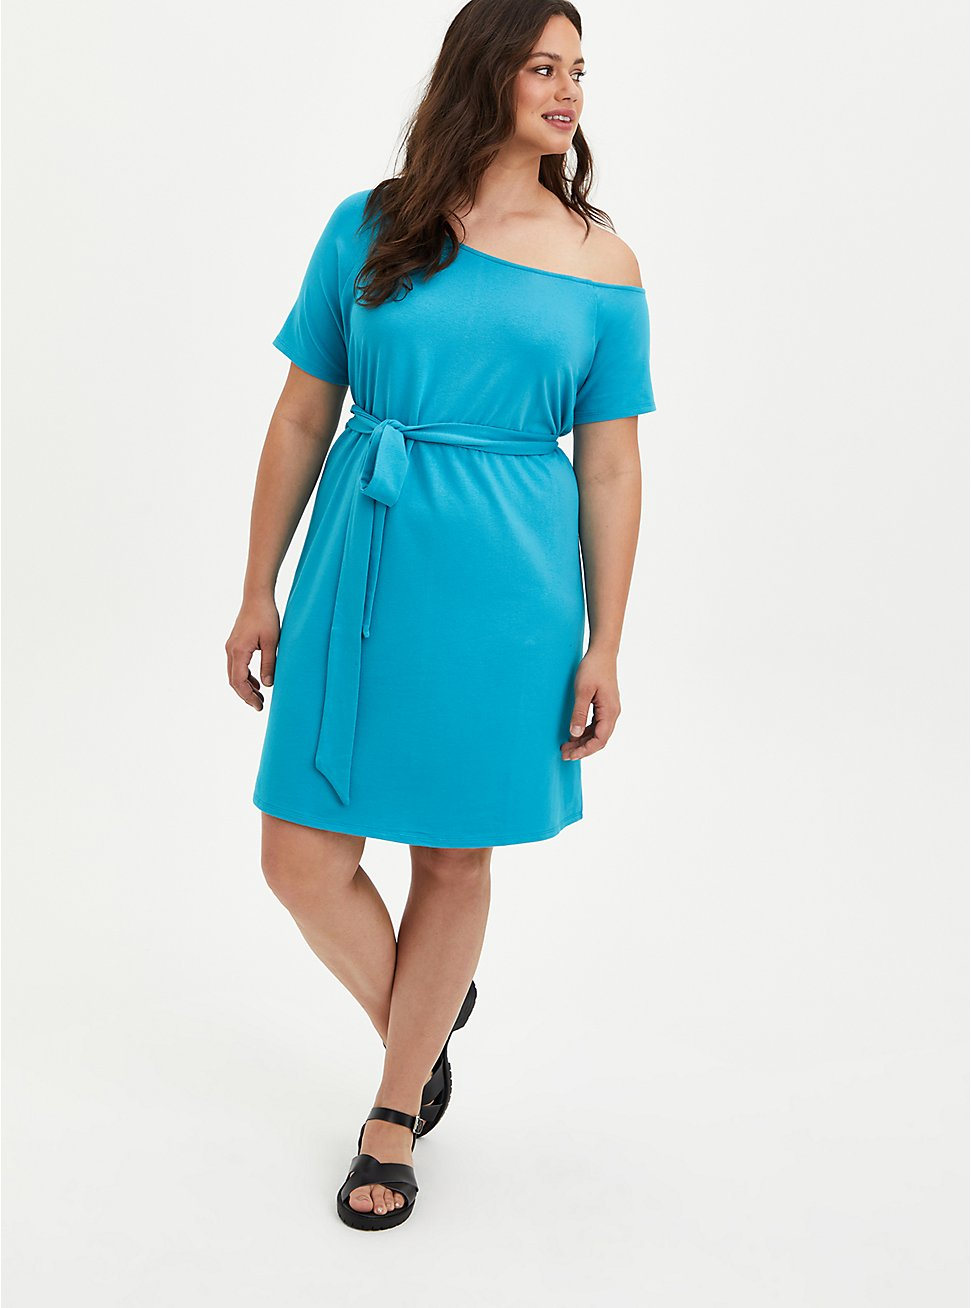 Plus Size Off-Shoulder T-Shirt Dress -  French Terry Teal , TEAL, hi-res